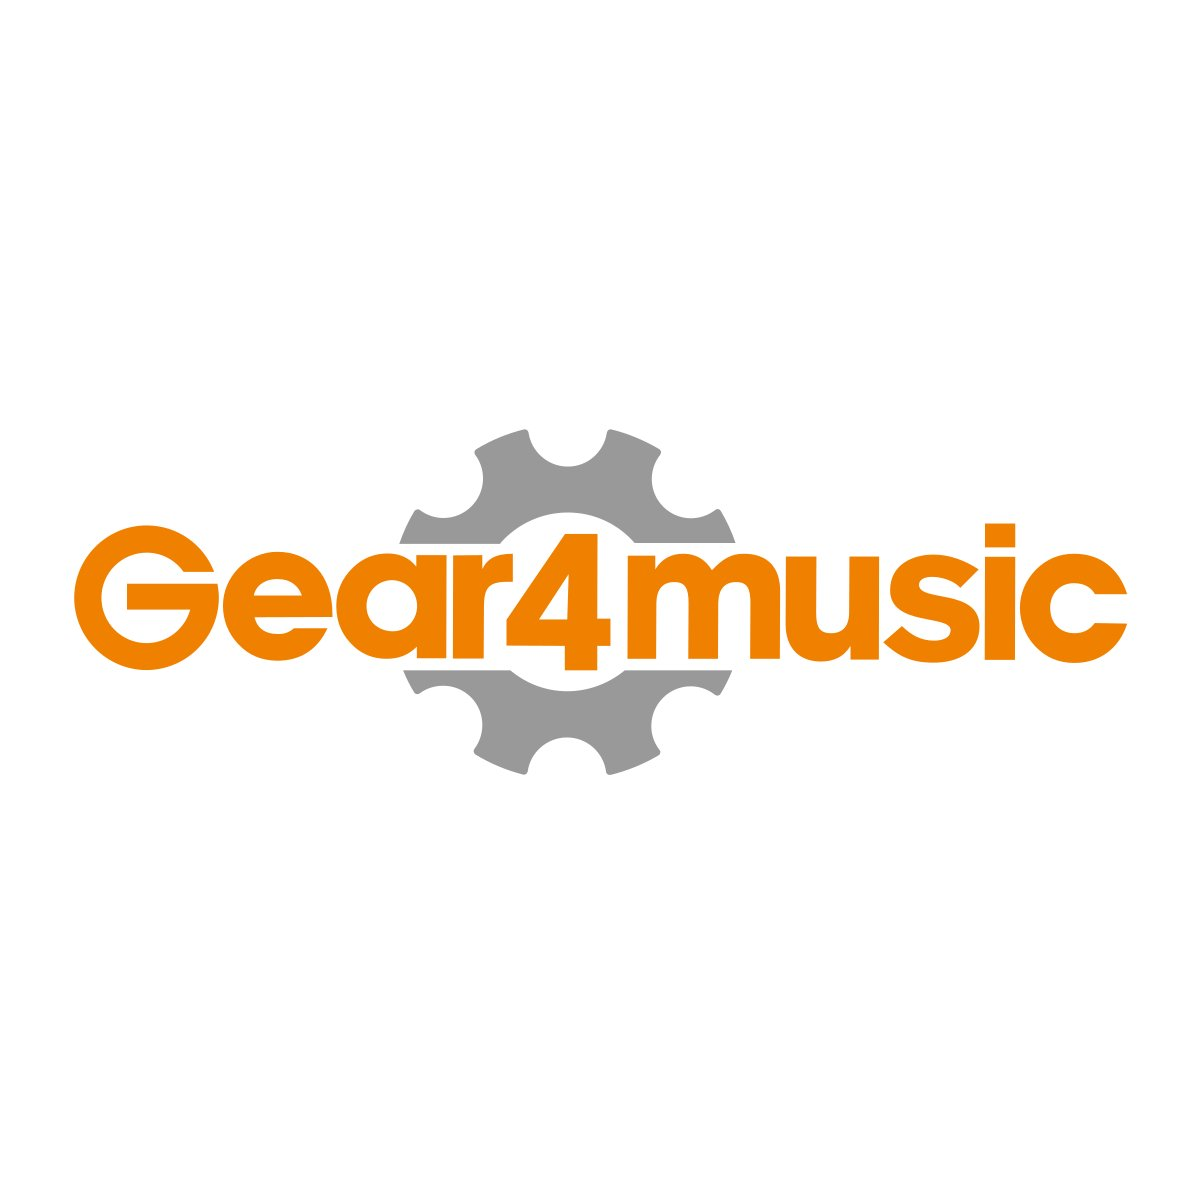 Image of Deluxe Trumpet by Gear4music Gold